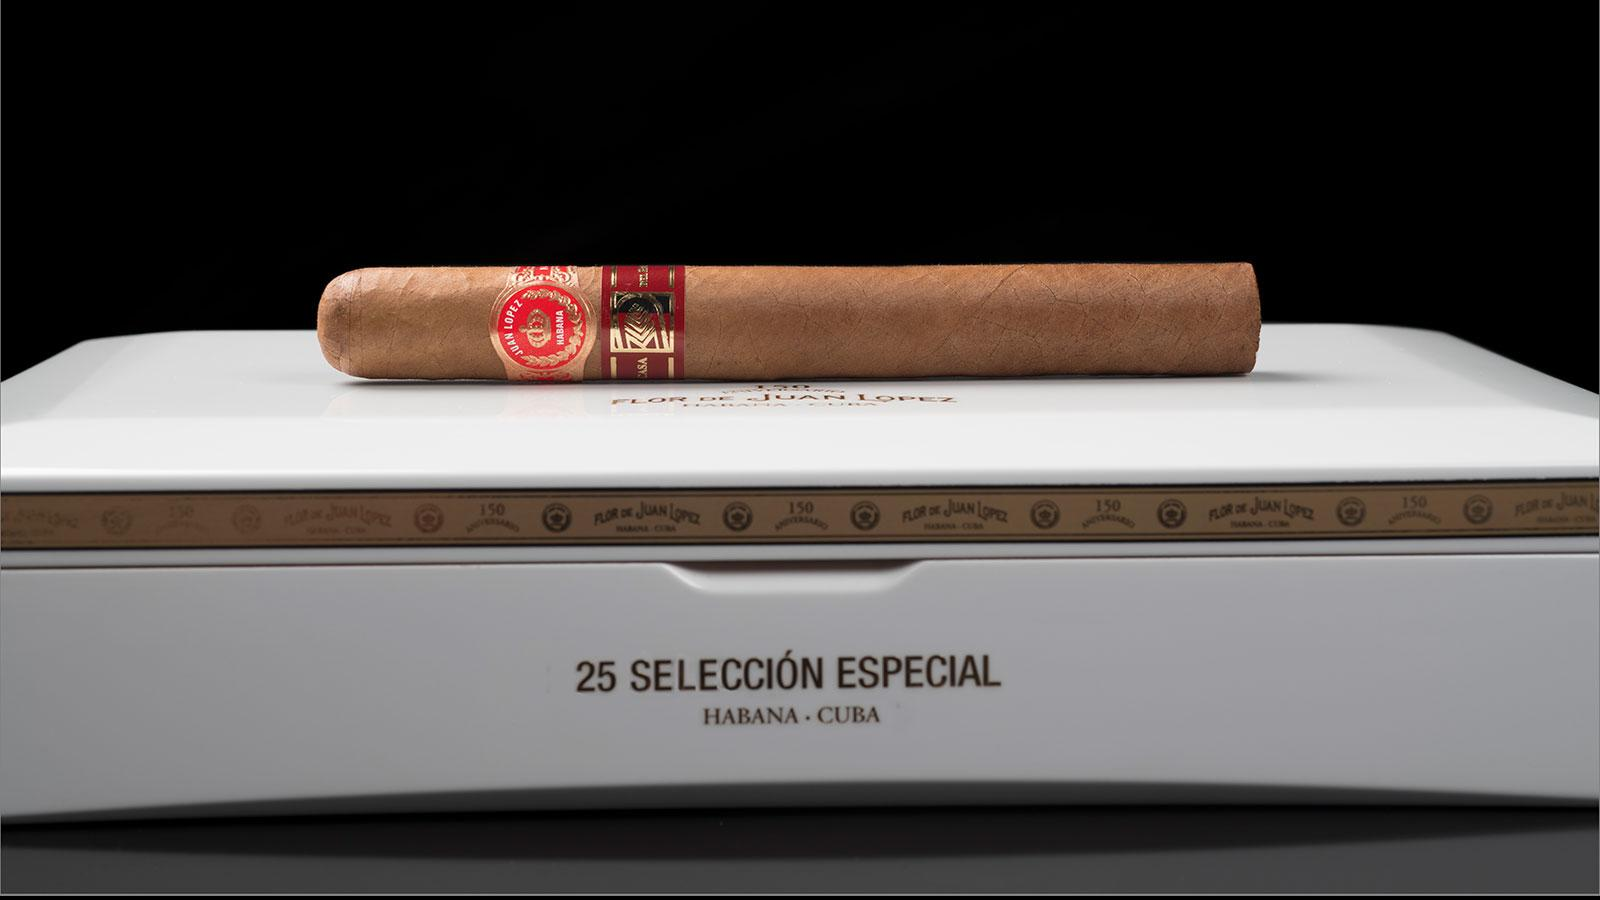 Juan Lopez Selección Especial measures 6 11/16 inches by 52 ring gauge and comes in 25-count boxes.